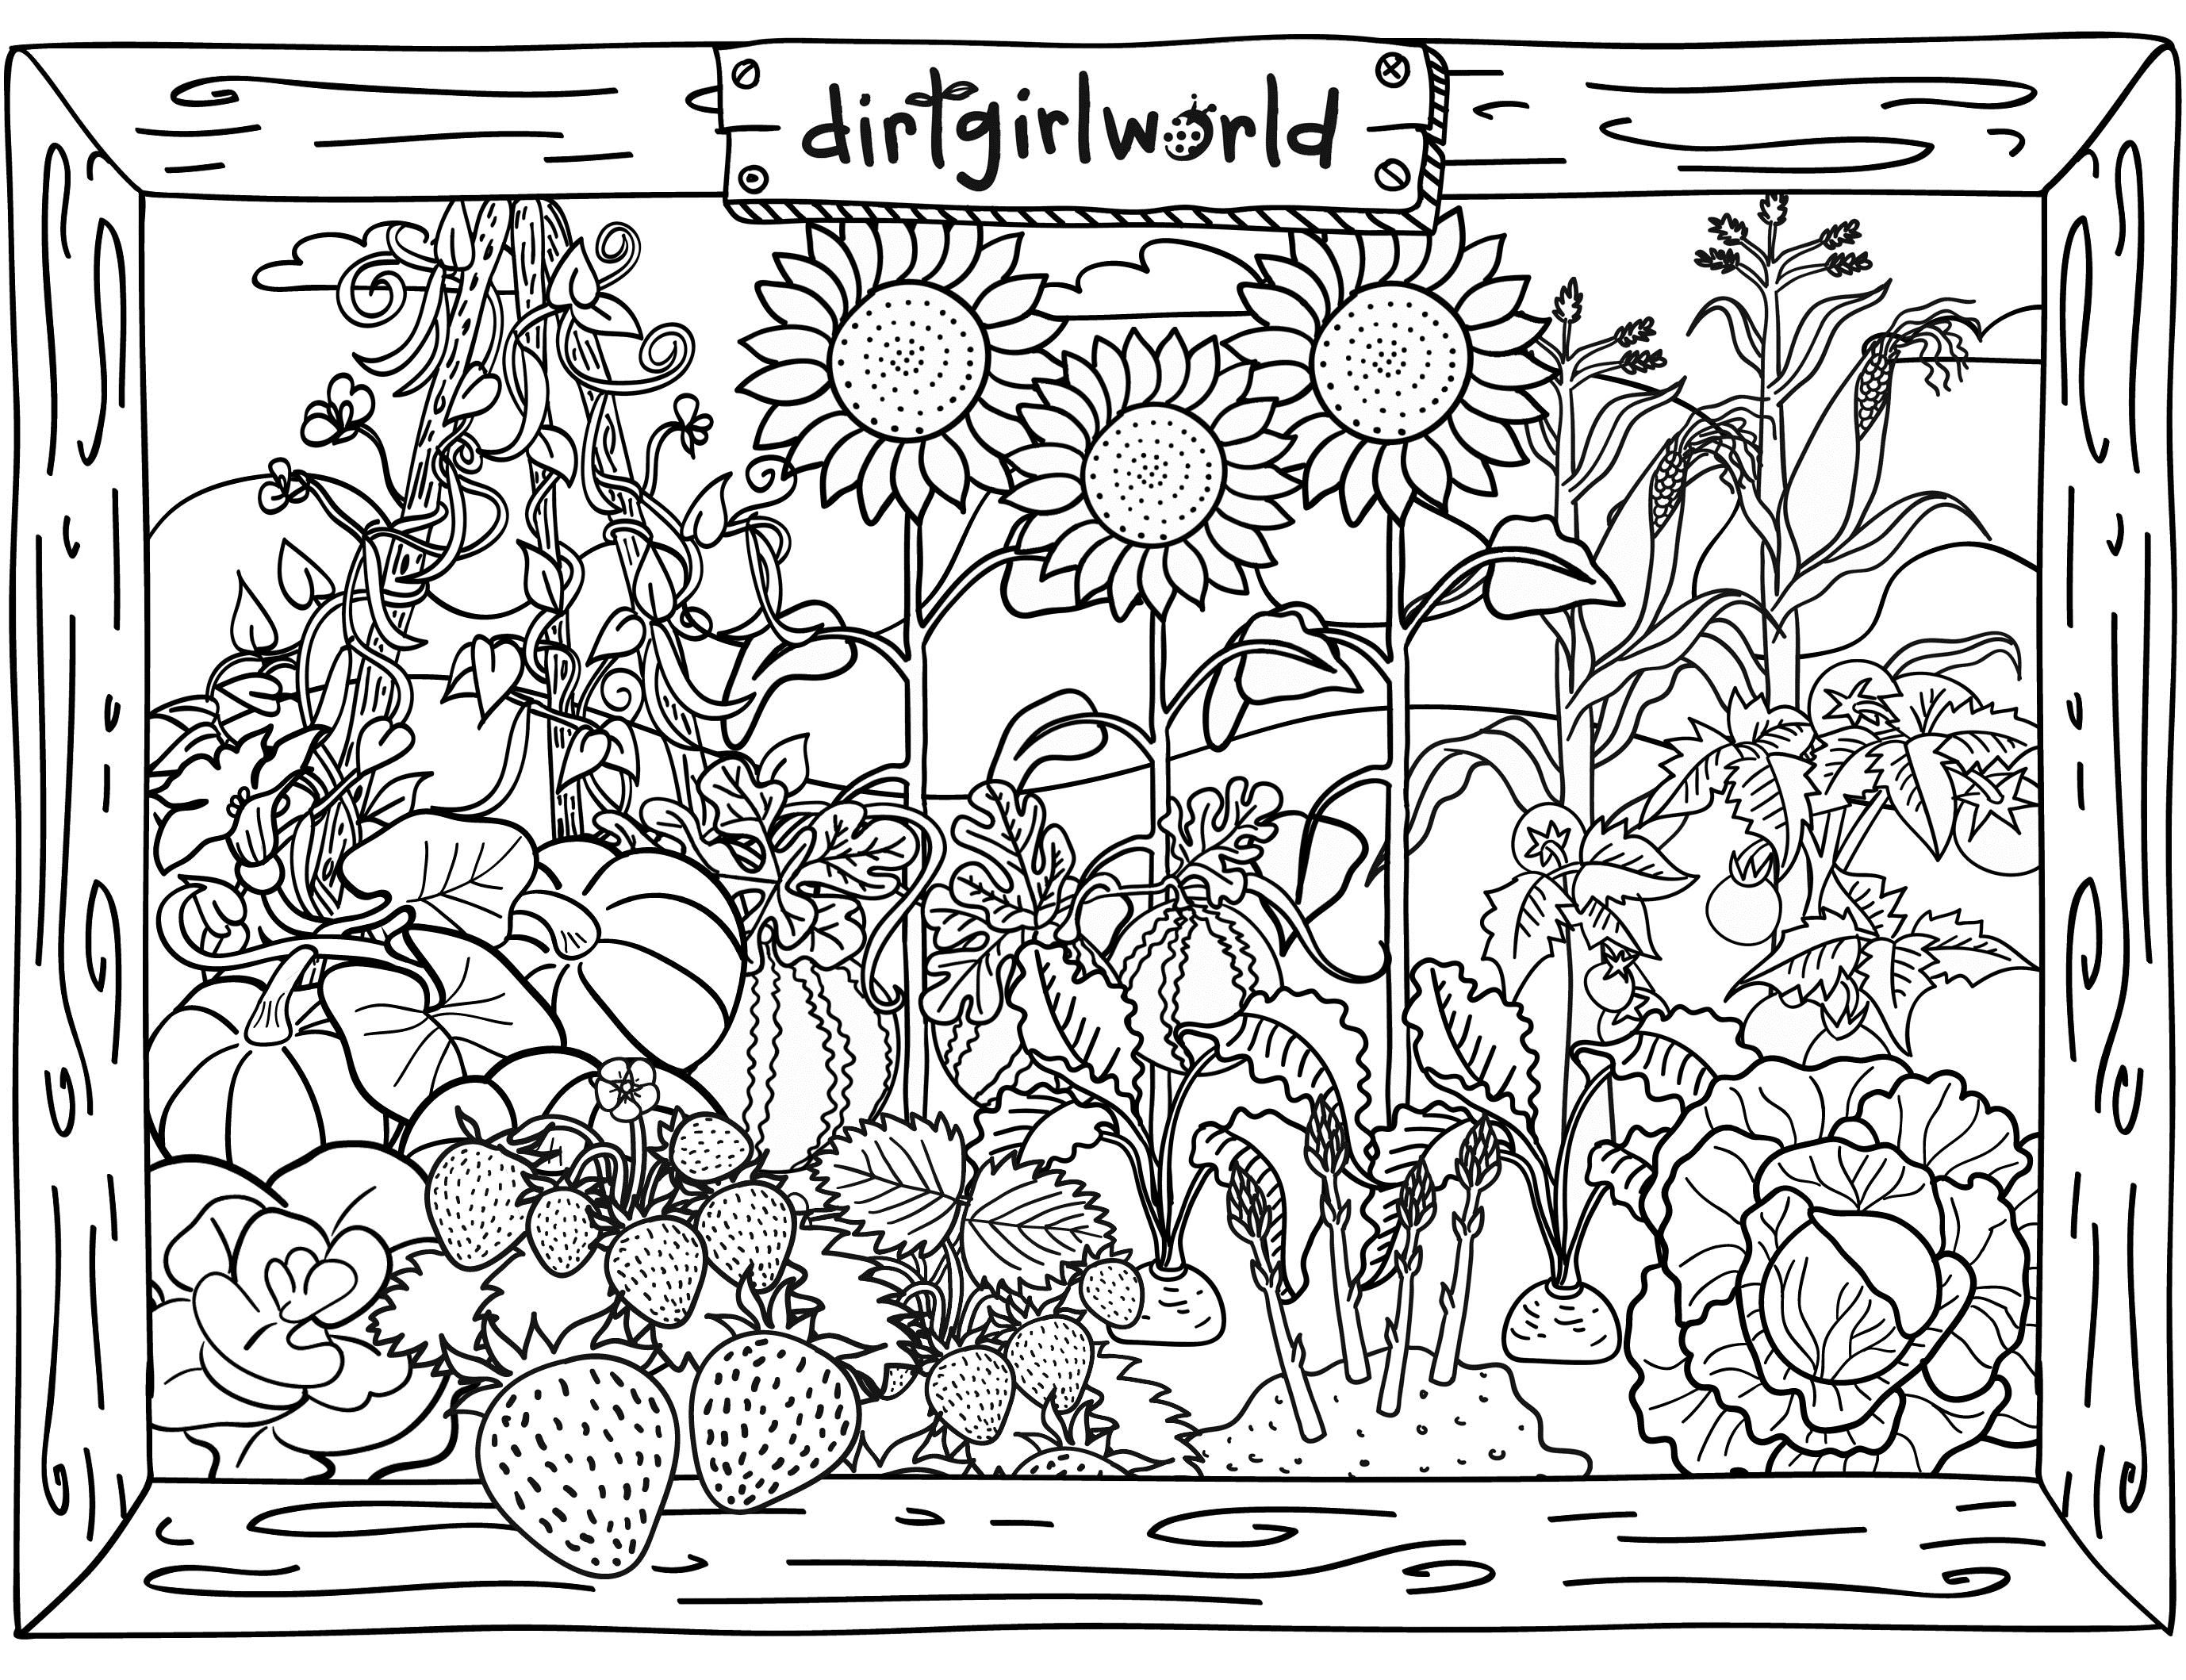 Free coloring page garden - Gardening Coloring Pages To Download And Print For Free